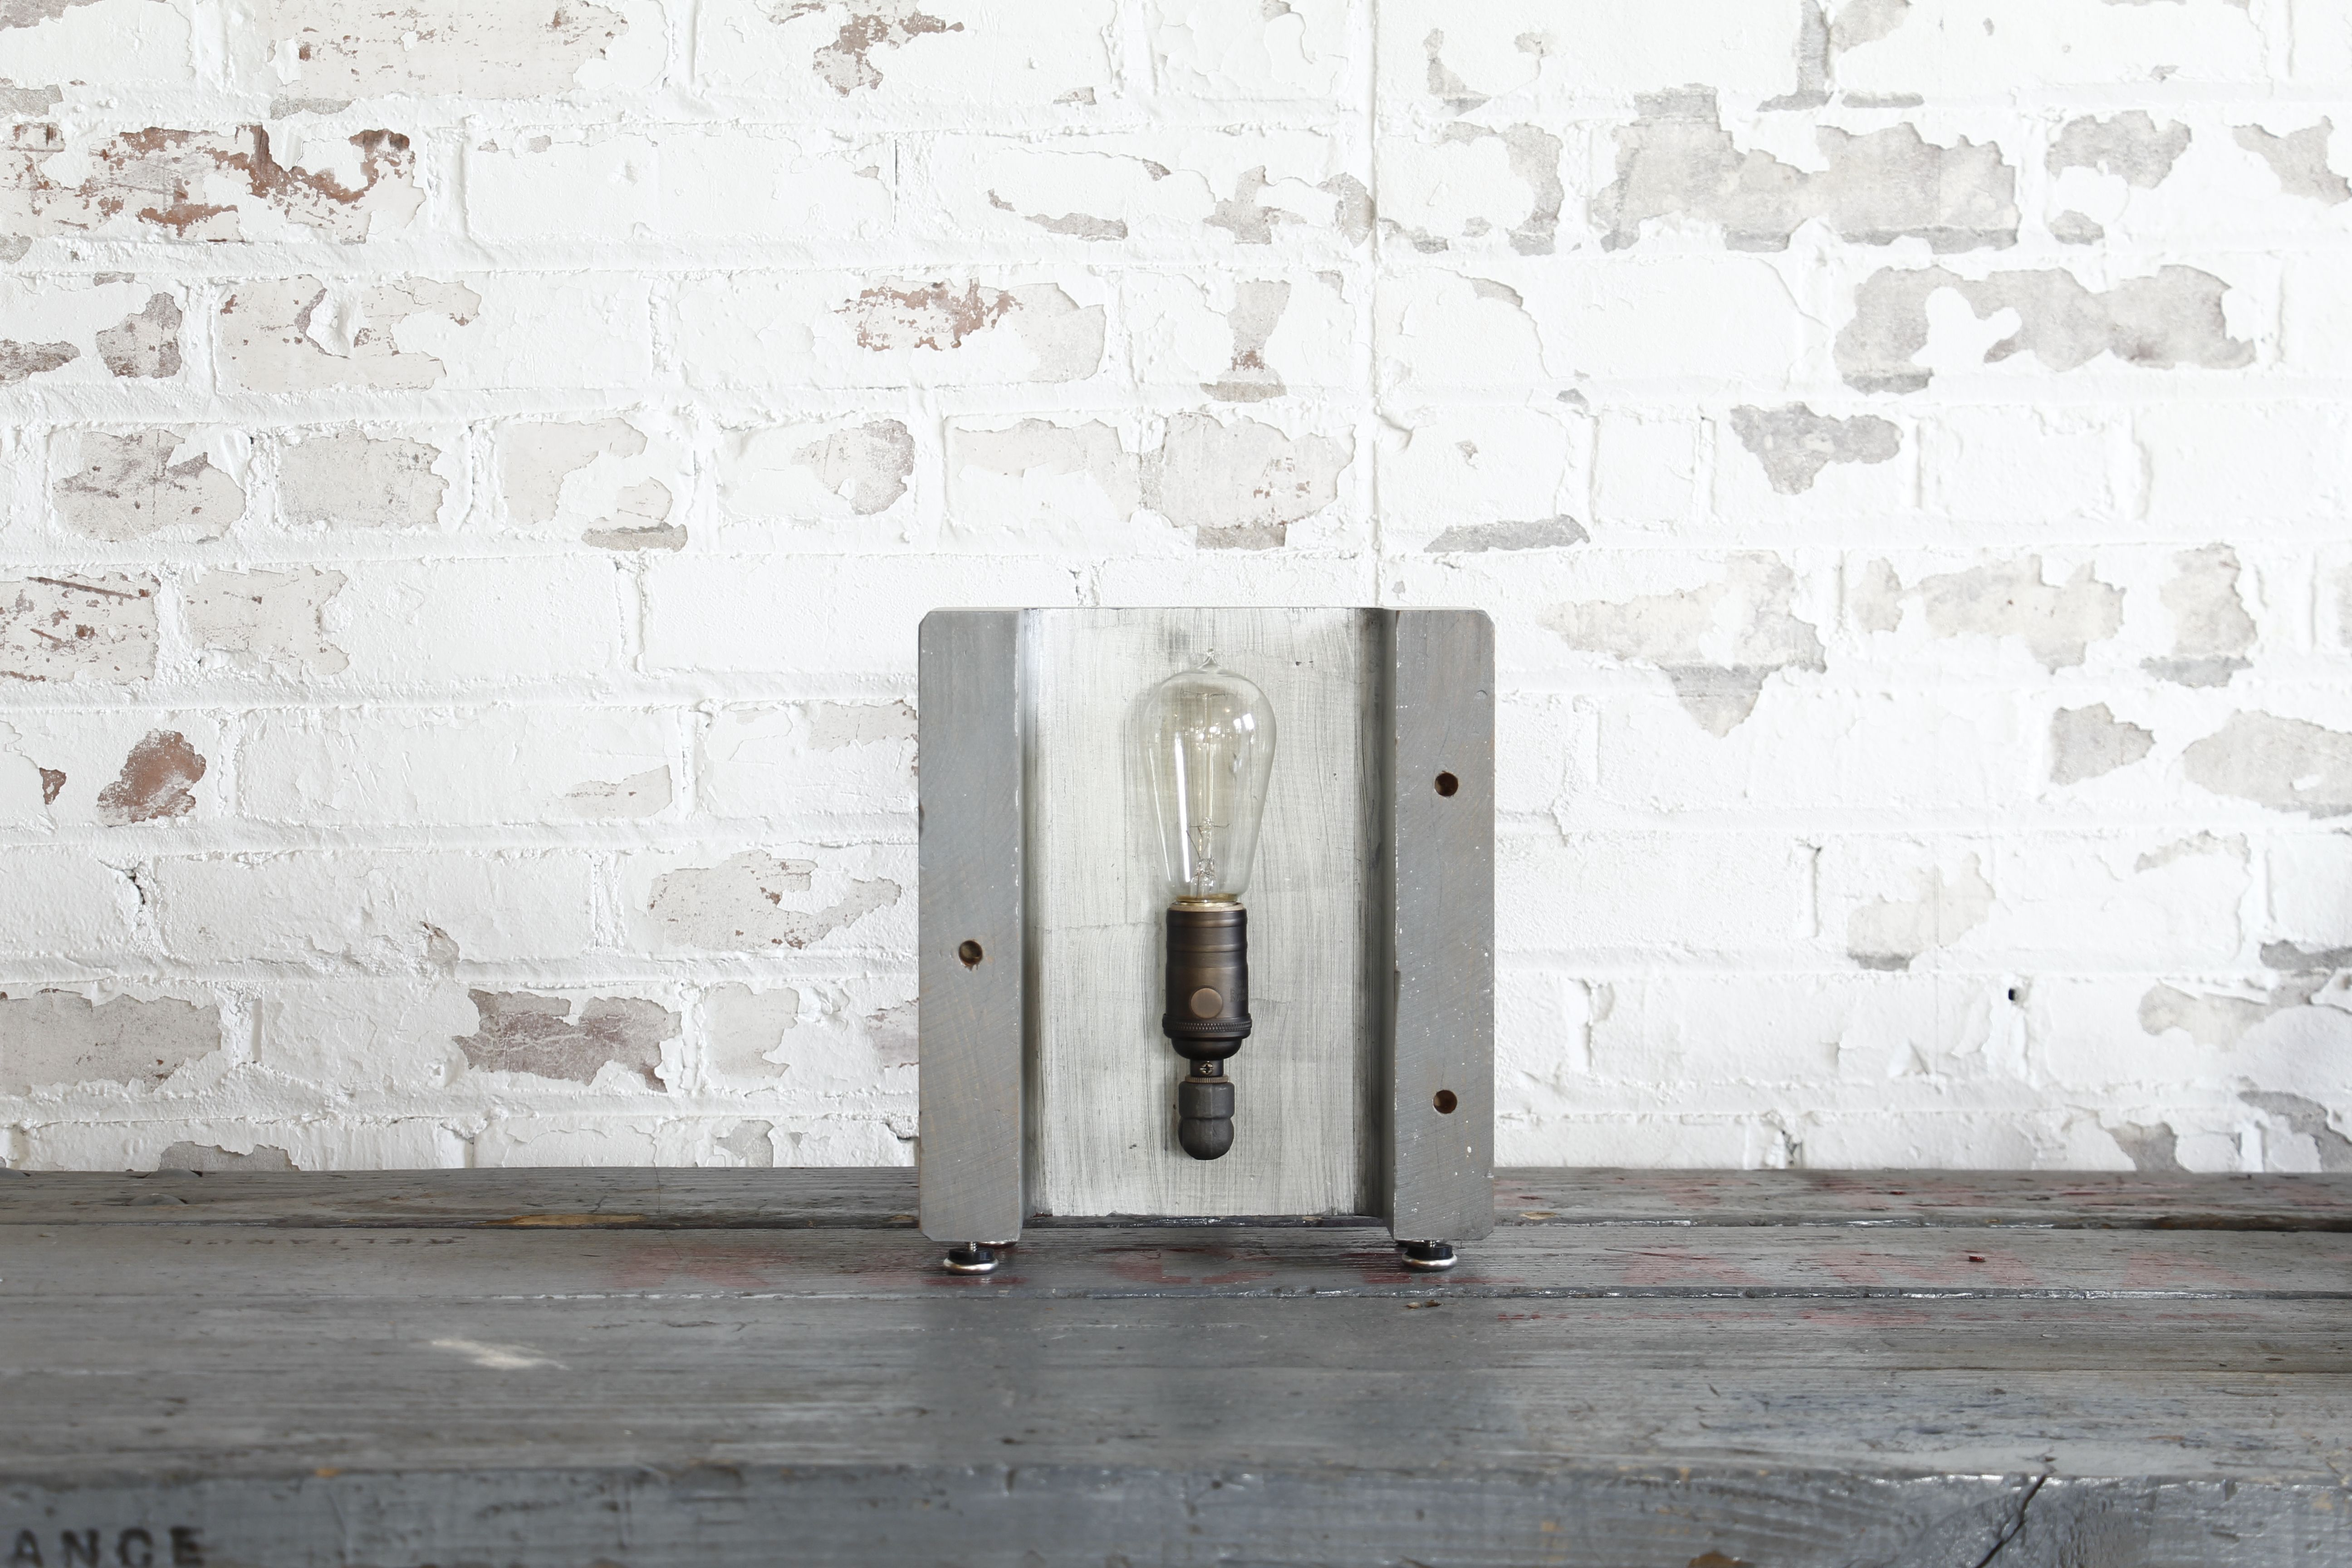 15 Of 80 Limited Edition Foundry Lights By Rustbelt Reclamation, A Reclaimed  Wood Furniture Manufacturer And Design Consultancy Located In Cleveland,  Ohio.